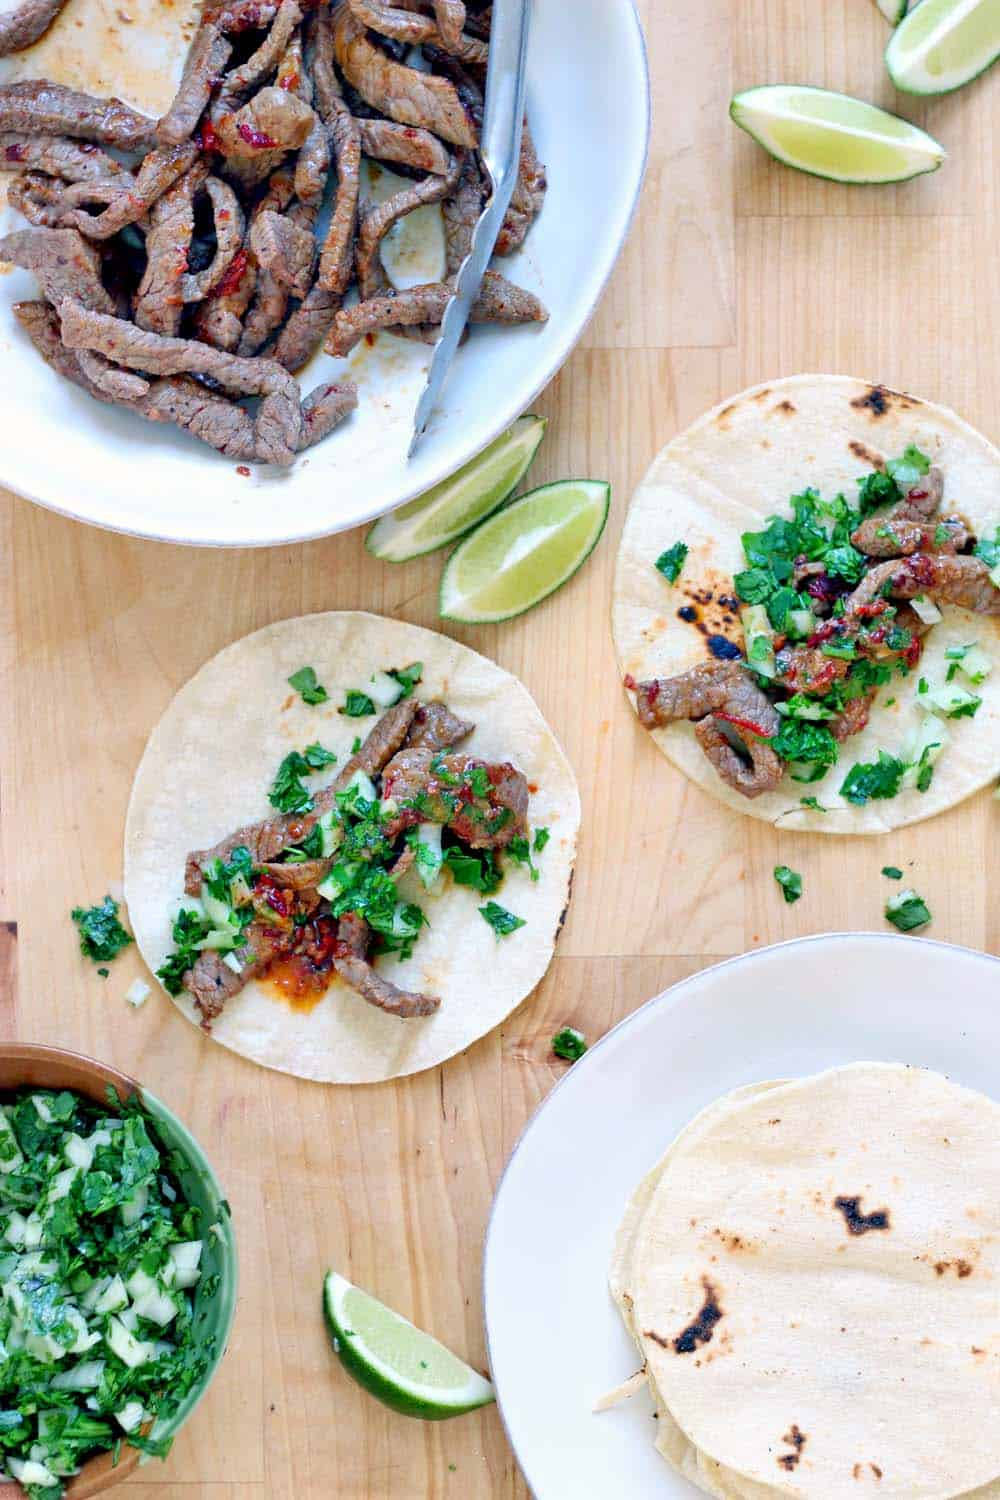 Bird's eye view of a wooden cutting board holding two open tacos, a plate of tortillas, a plate of steak, lime wedges, and chopped greens.